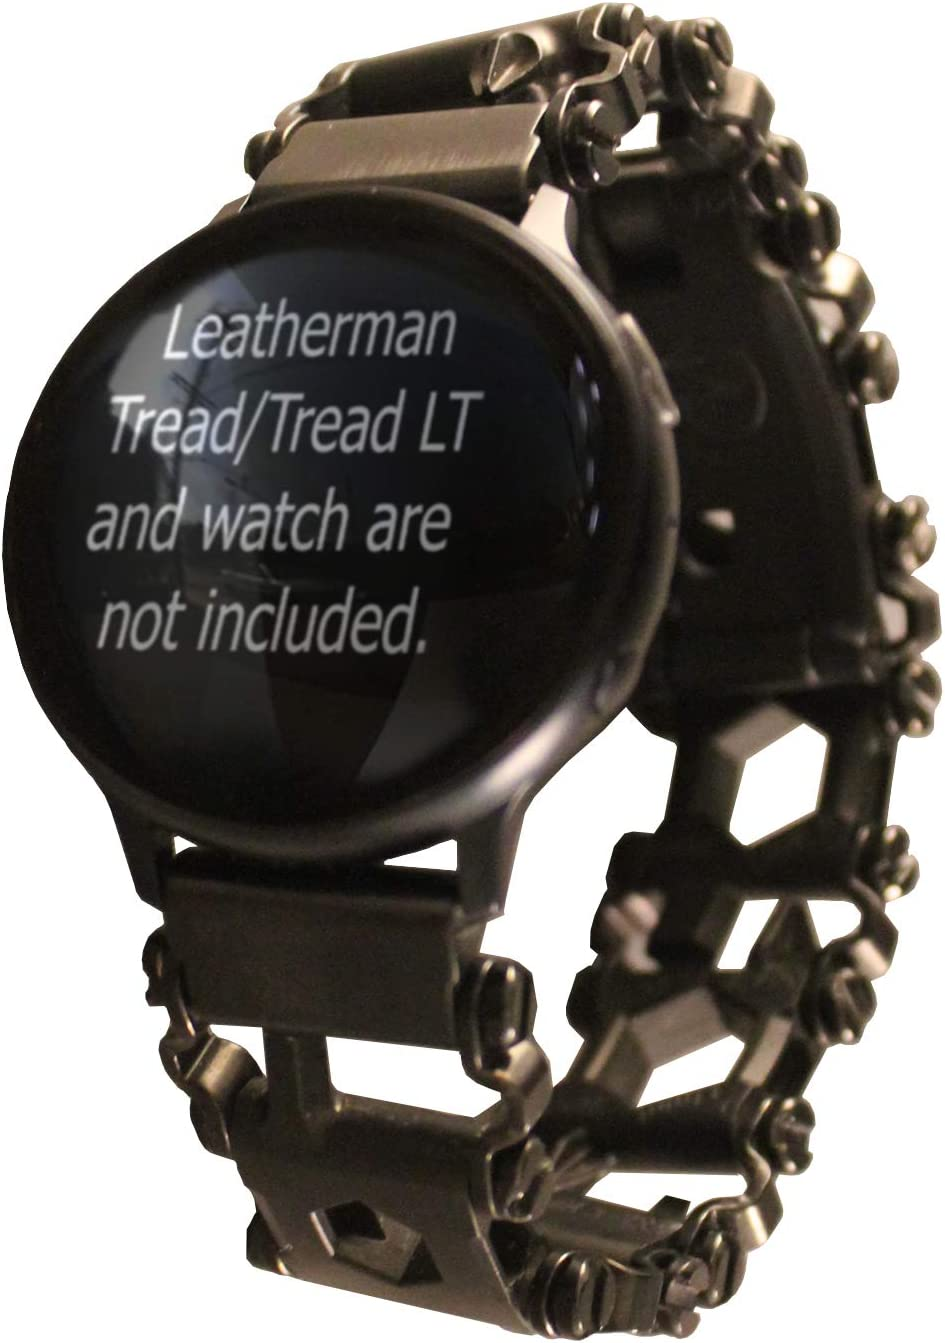 BestTechTool watch adapter compatible with LEATHERMAN TREAD and compatible with other smart watches - BTT adapter (Samsung Galaxy 46mm, Black-TREAD)